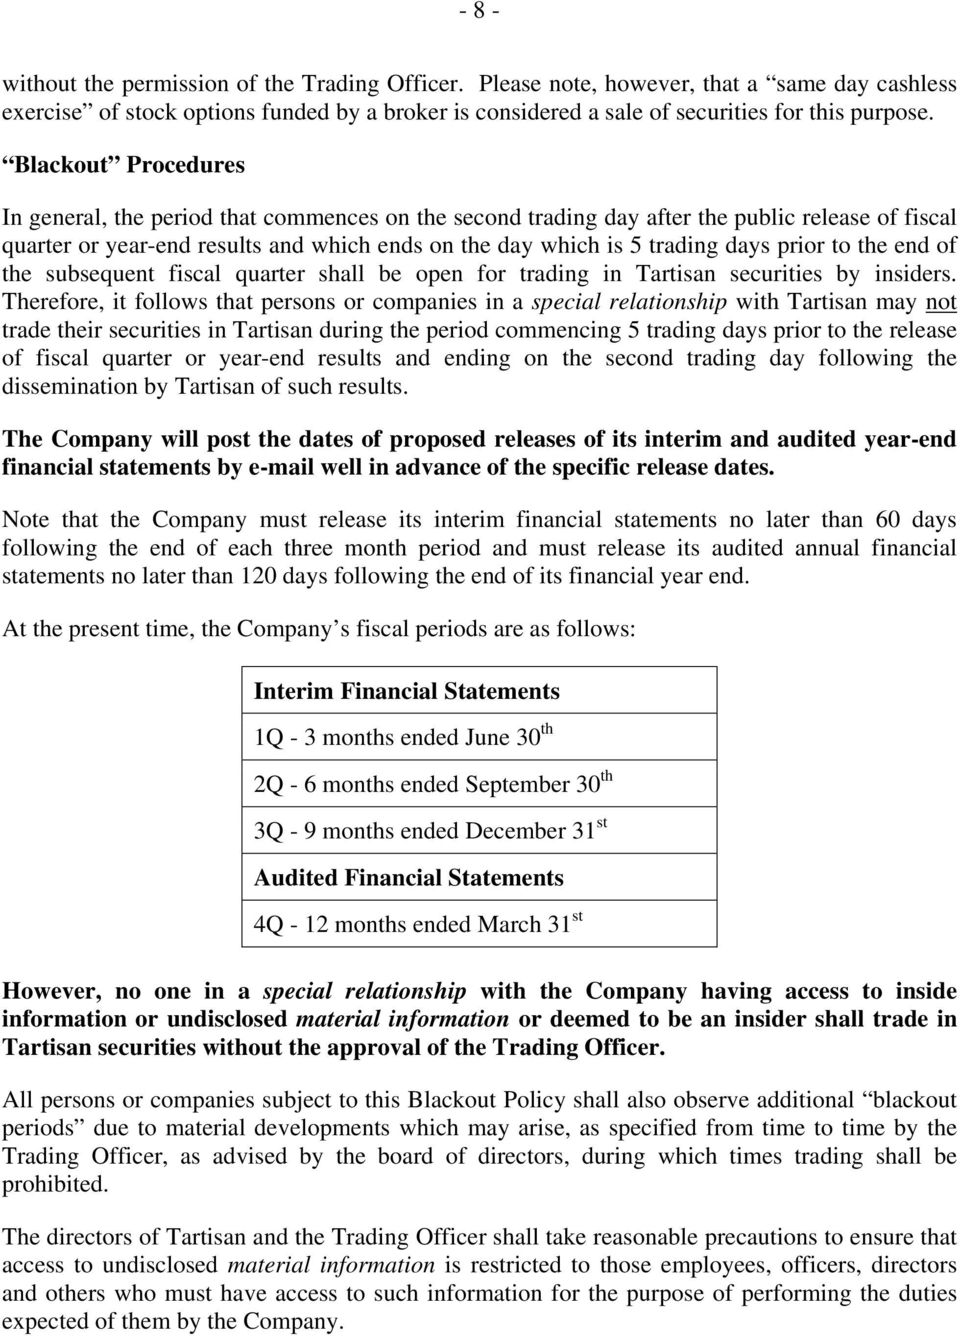 prior to the end of the subsequent fiscal quarter shall be open for trading in Tartisan securities by insiders.